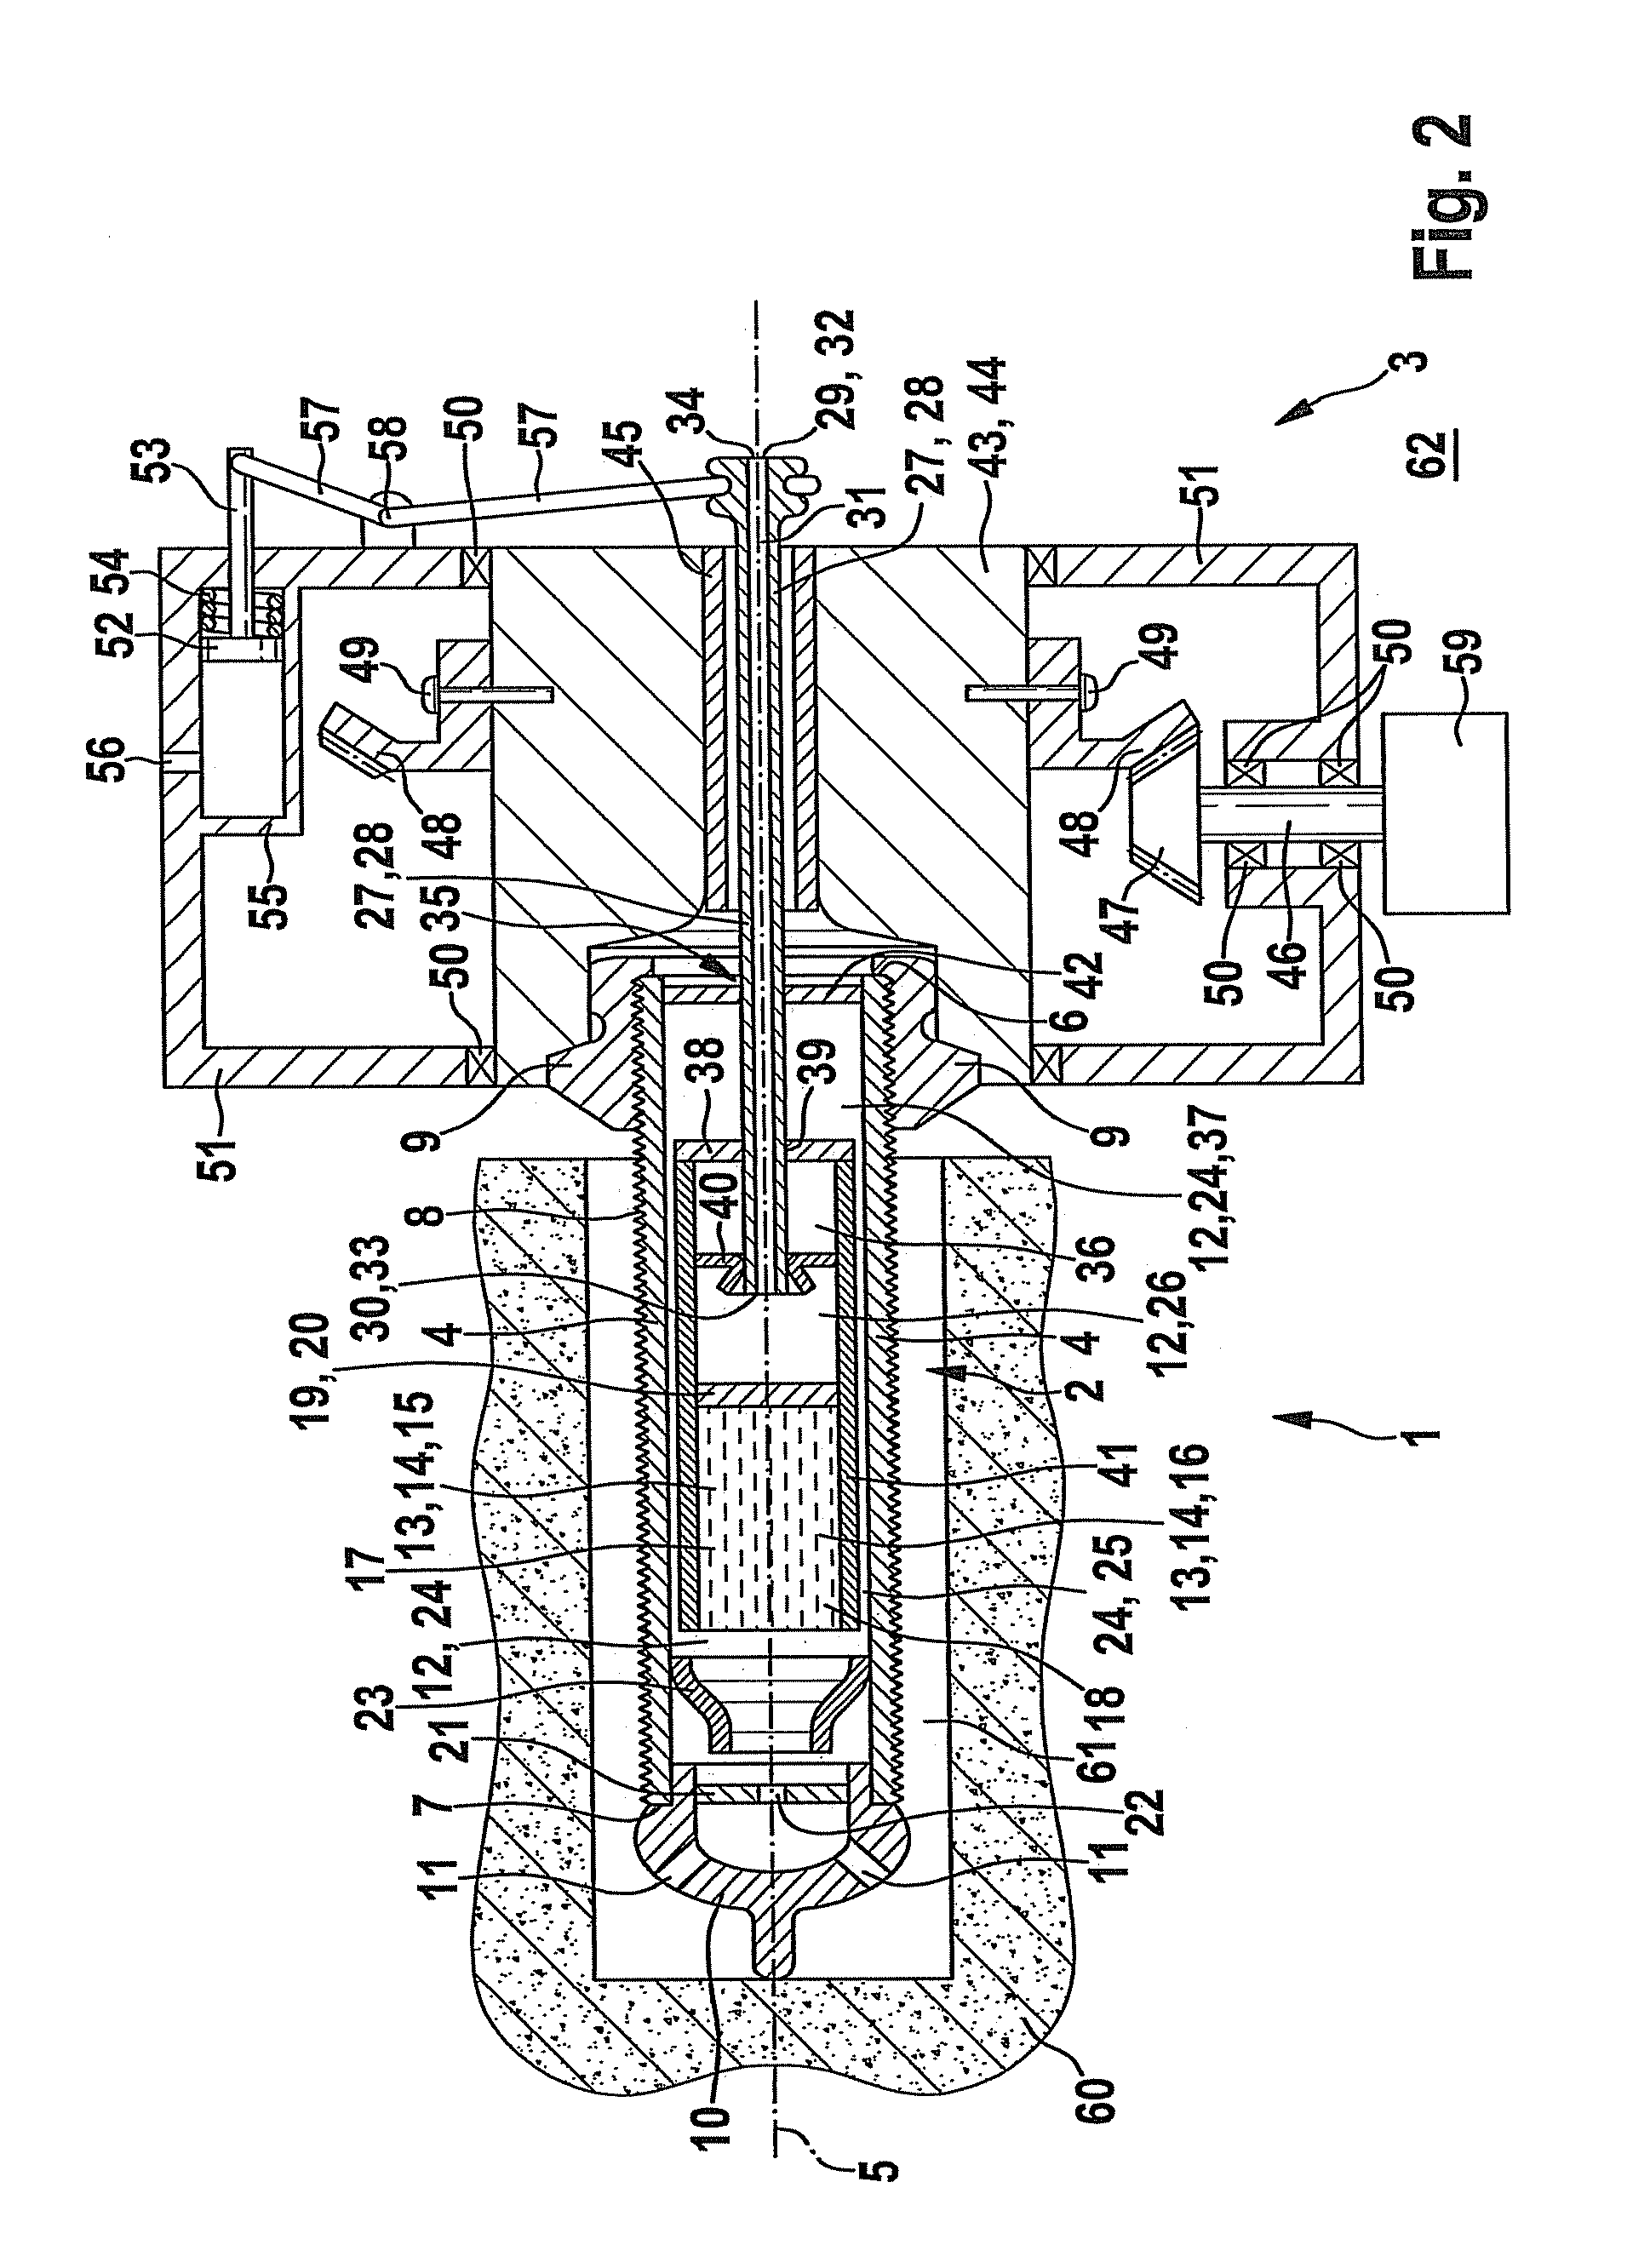 wiring diagram round trailer plug with Wiring Diagram For Trailer With Kes on 7 Pin Trailer Ke Wiring Diagram For furthermore 28 additionally 4 Prong Trailer Plug Wiring Diagram Wire Flat in addition Trailer Light Connectorwire Extension besides Bobcat Attachment Wiring Diagram 7 Pin Round.